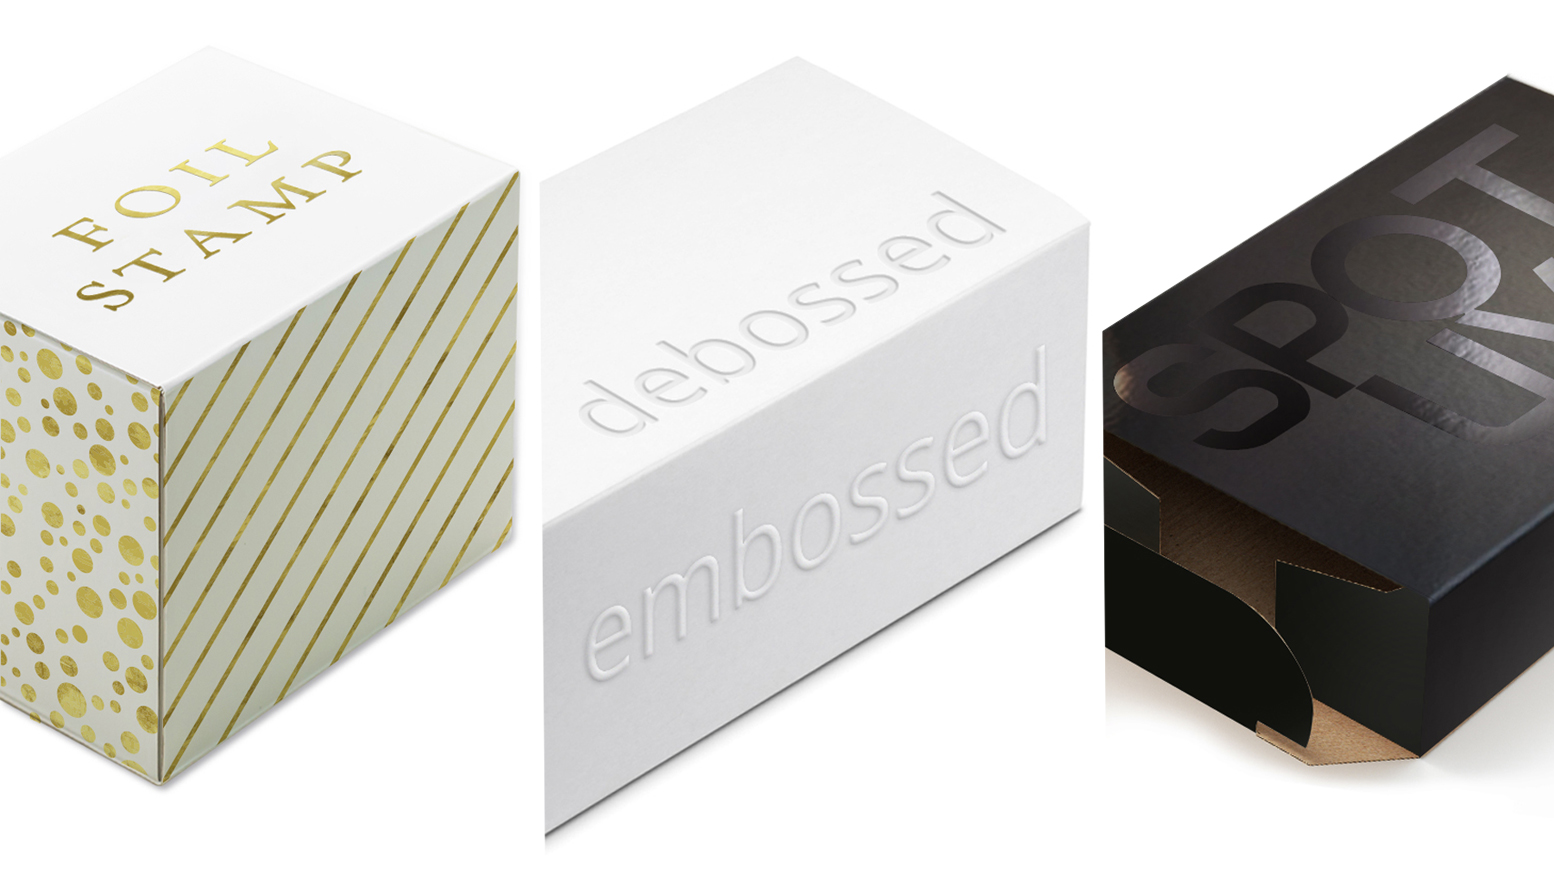 new product packaging technologies foil stamp, debossed, embossed, spot uv